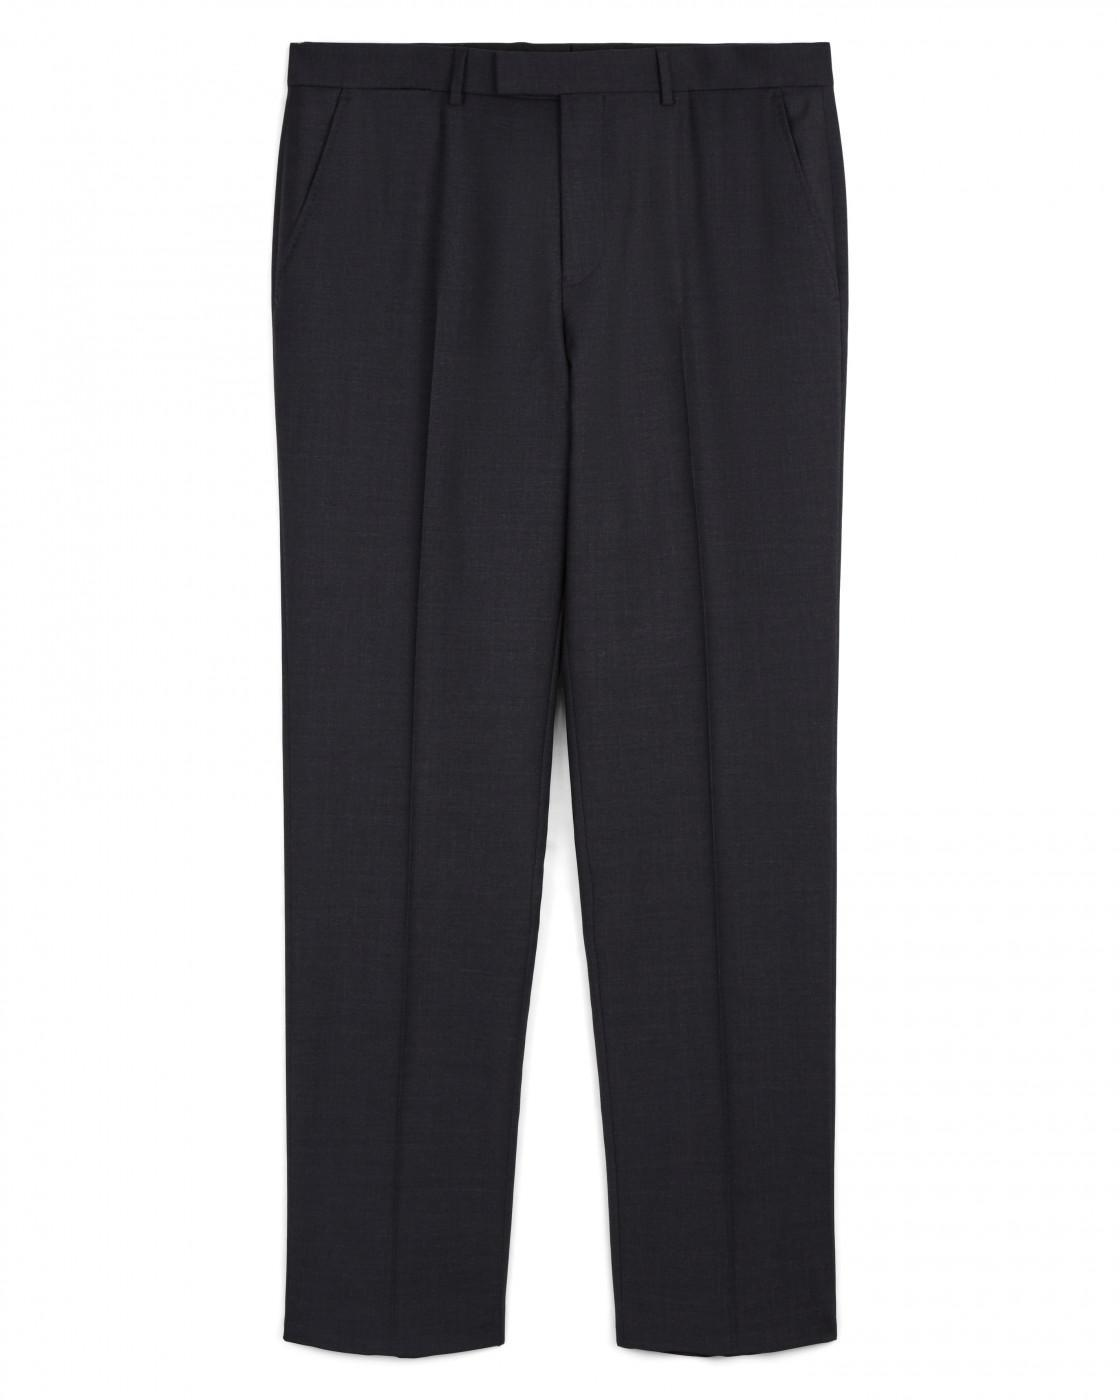 Tailored Plain Weave Suit Trouser By Austin Reed Thread